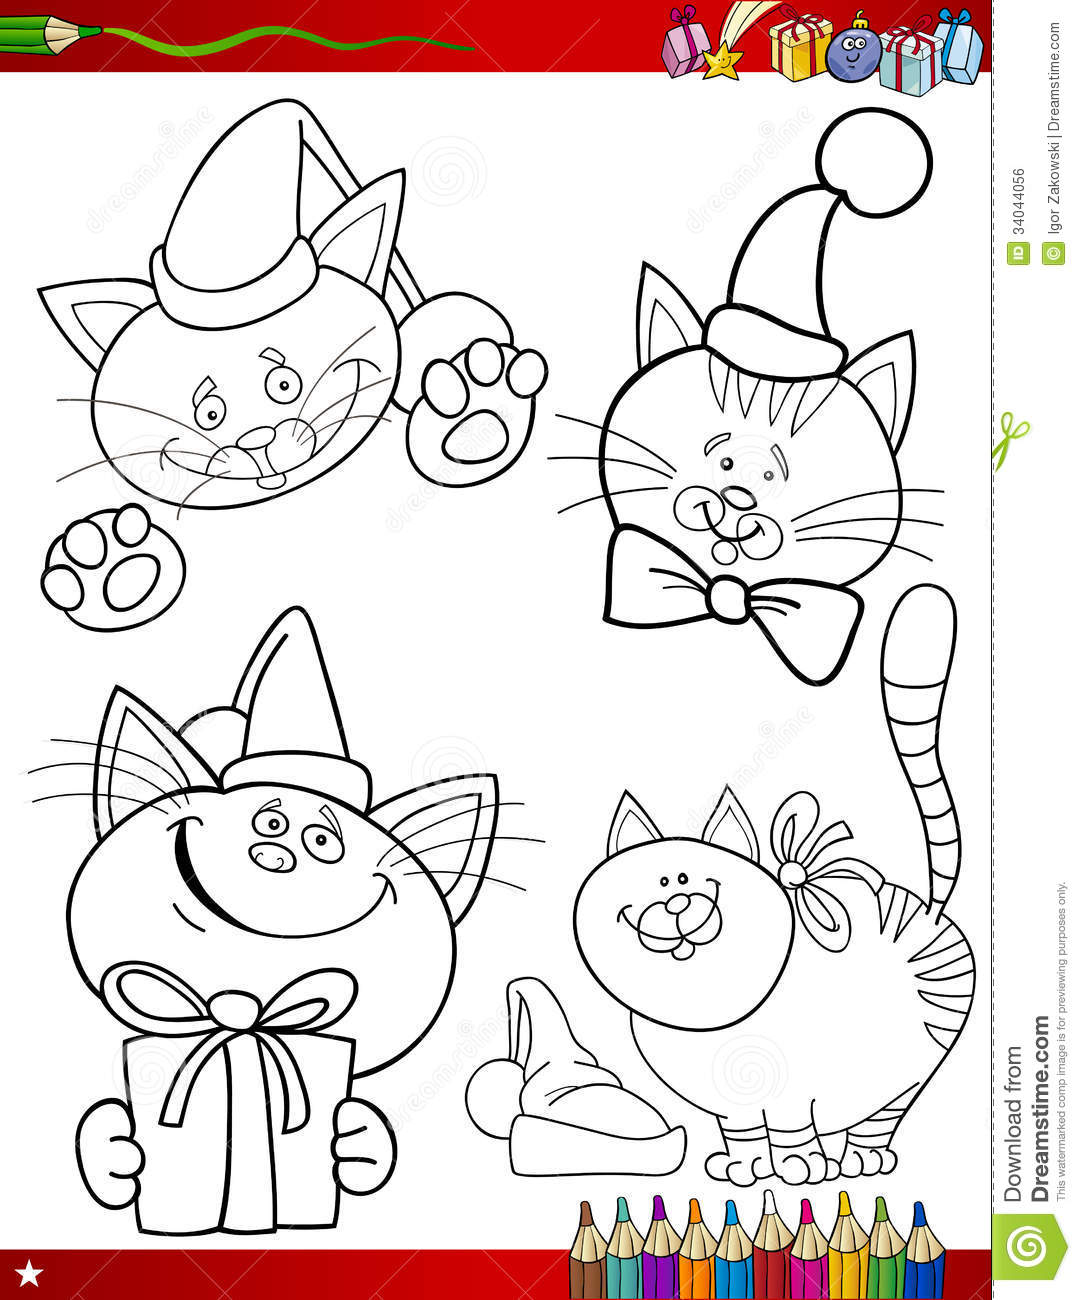 Cartoon Christmas Themes Coloring Page Royalty Free Stock